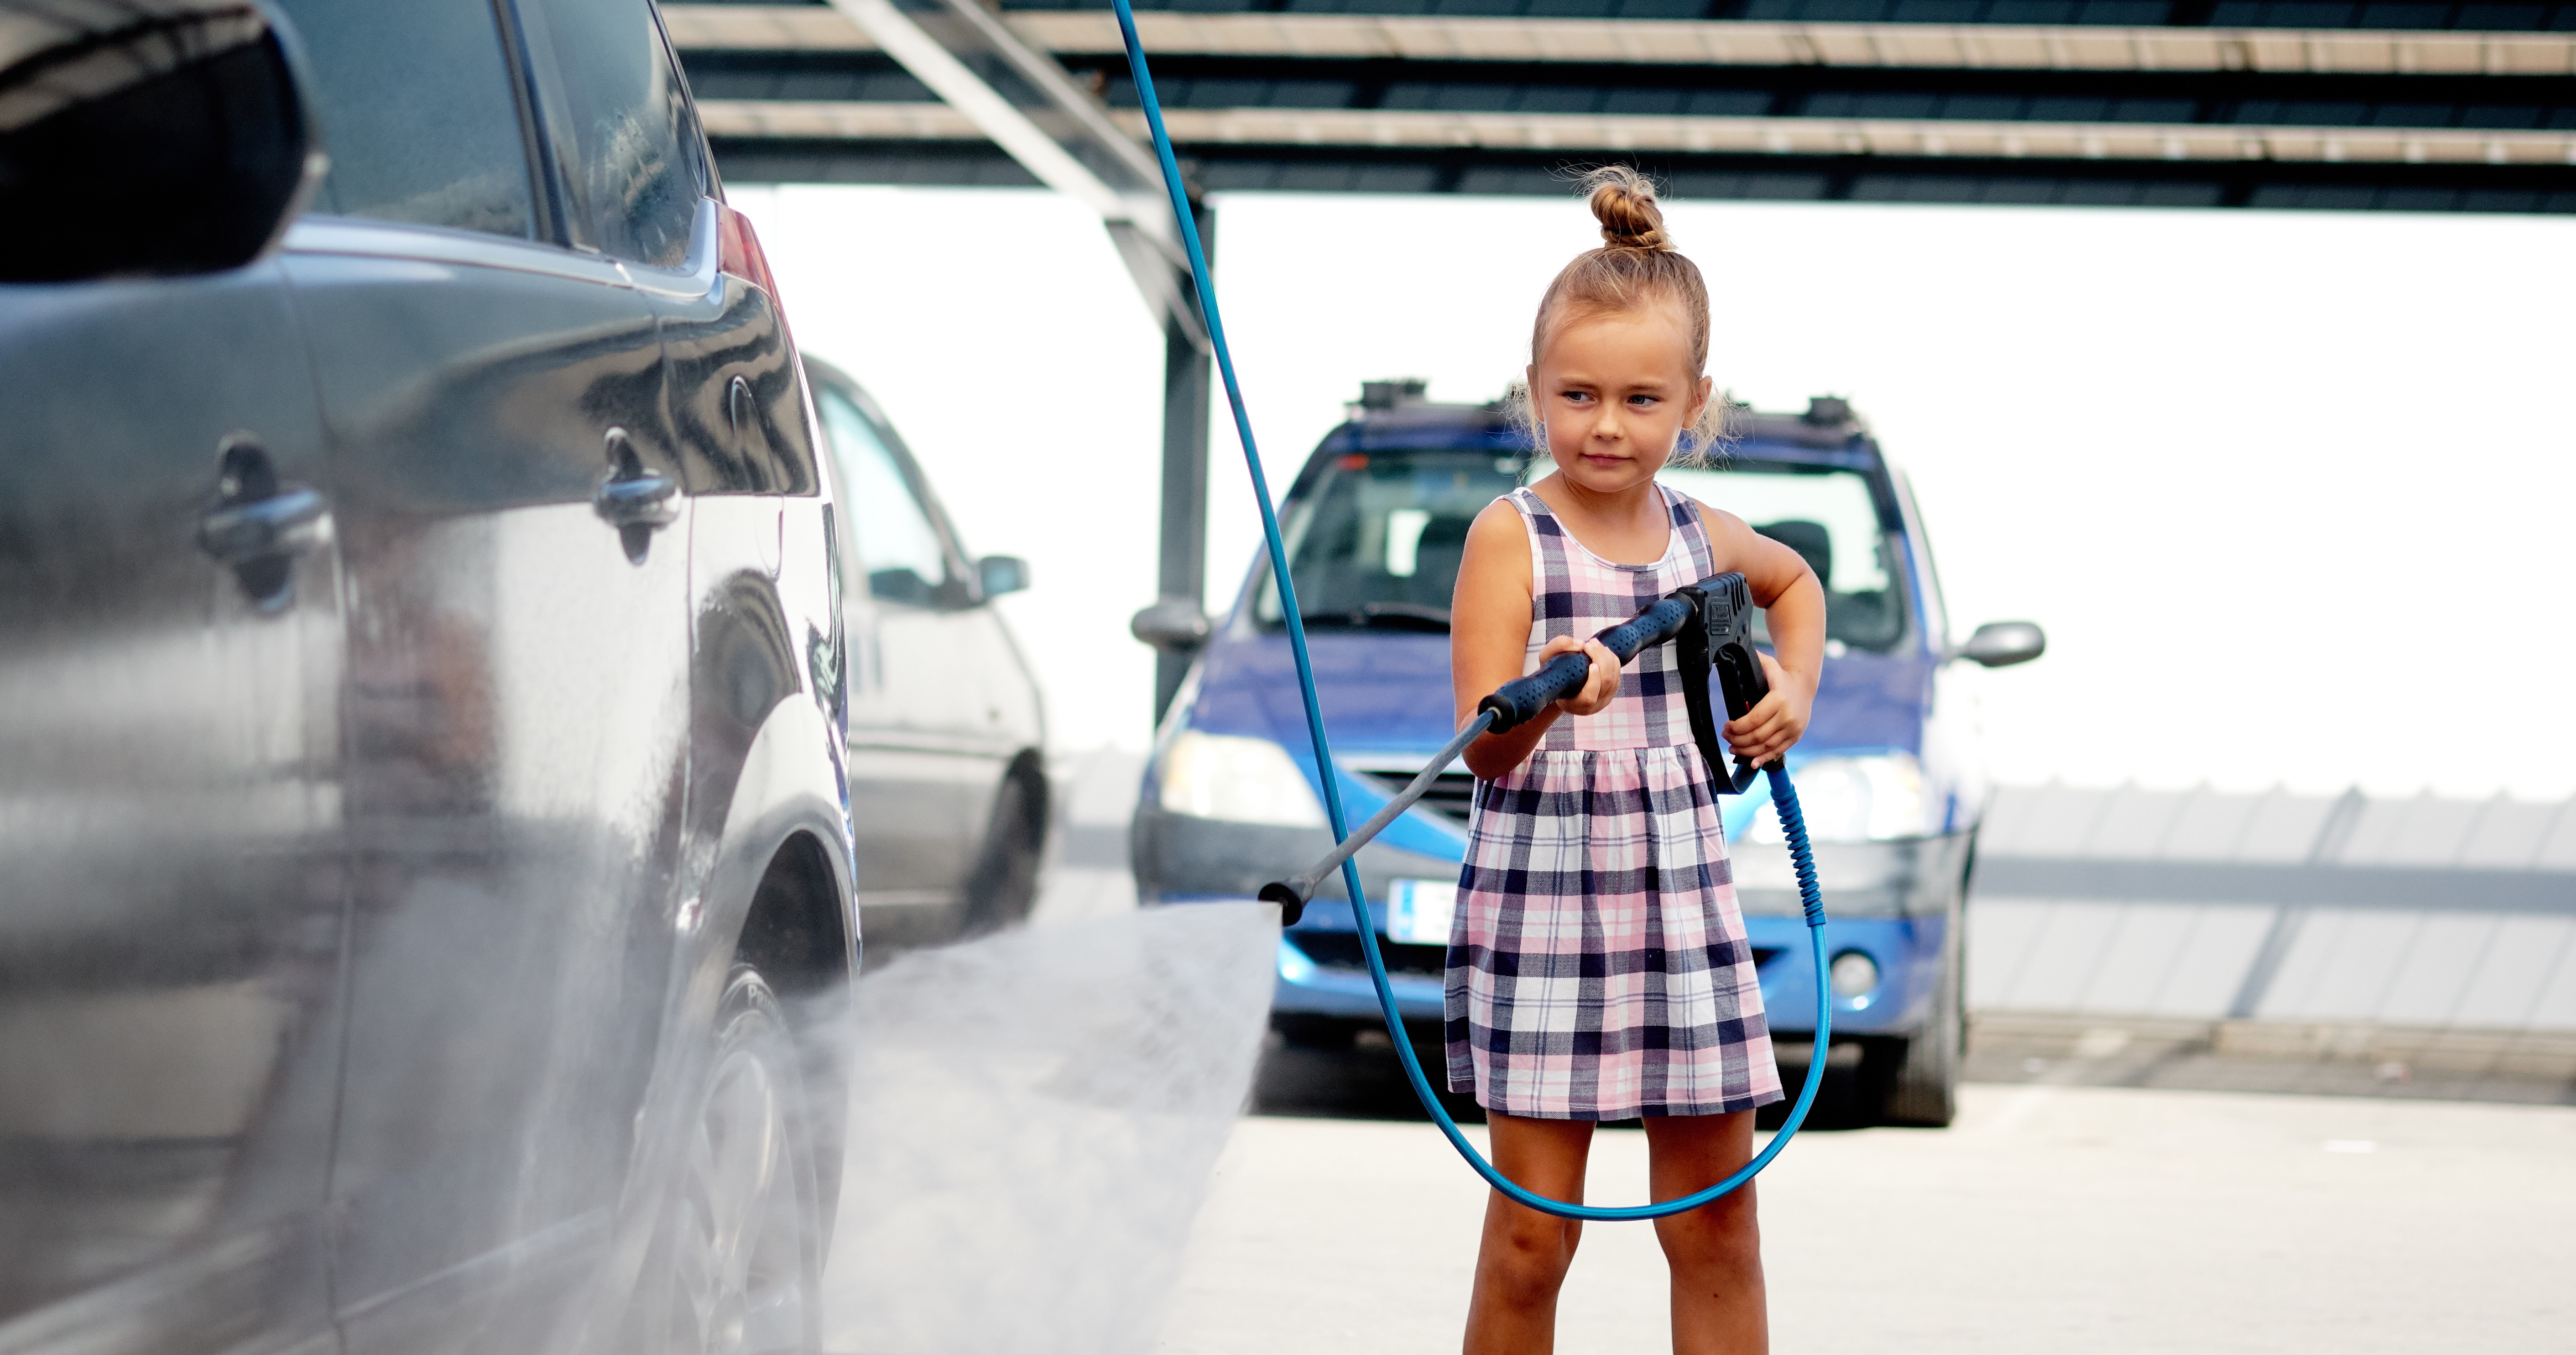 8 Best Extra Commercial Car Wash Accessories to Sell at Your Car Wash